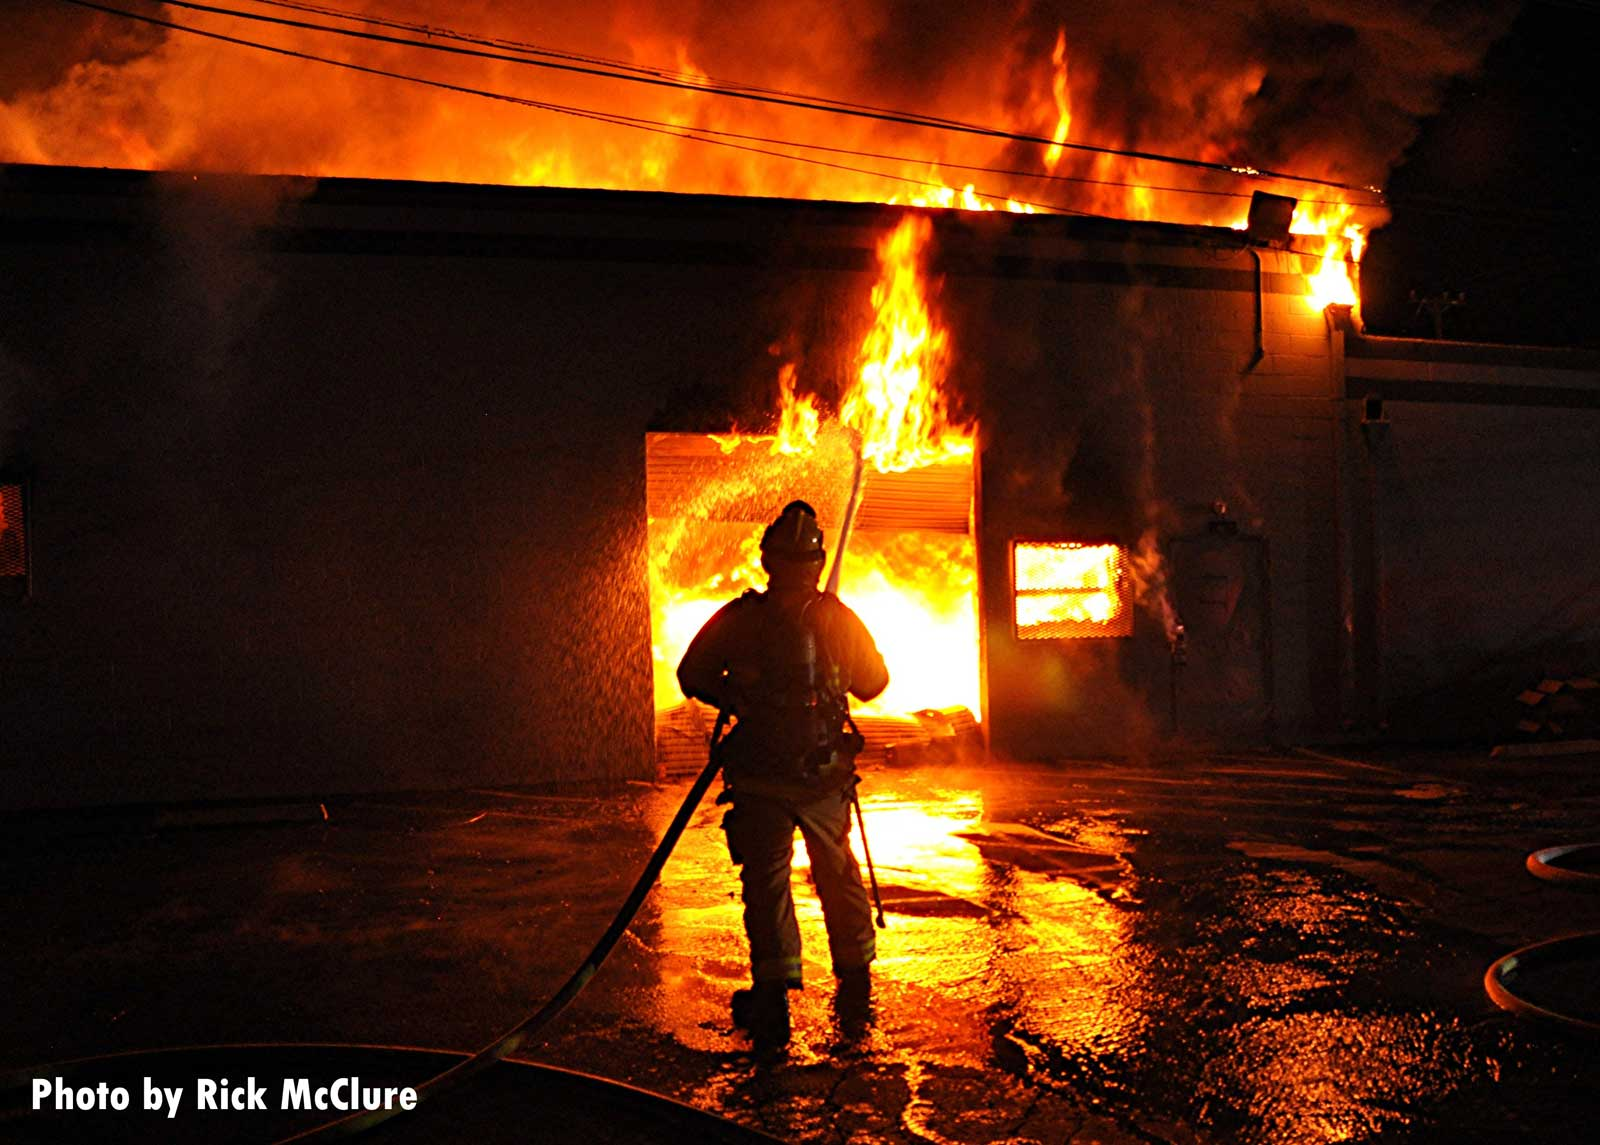 Firefighter silhouetted by flames in the burning building